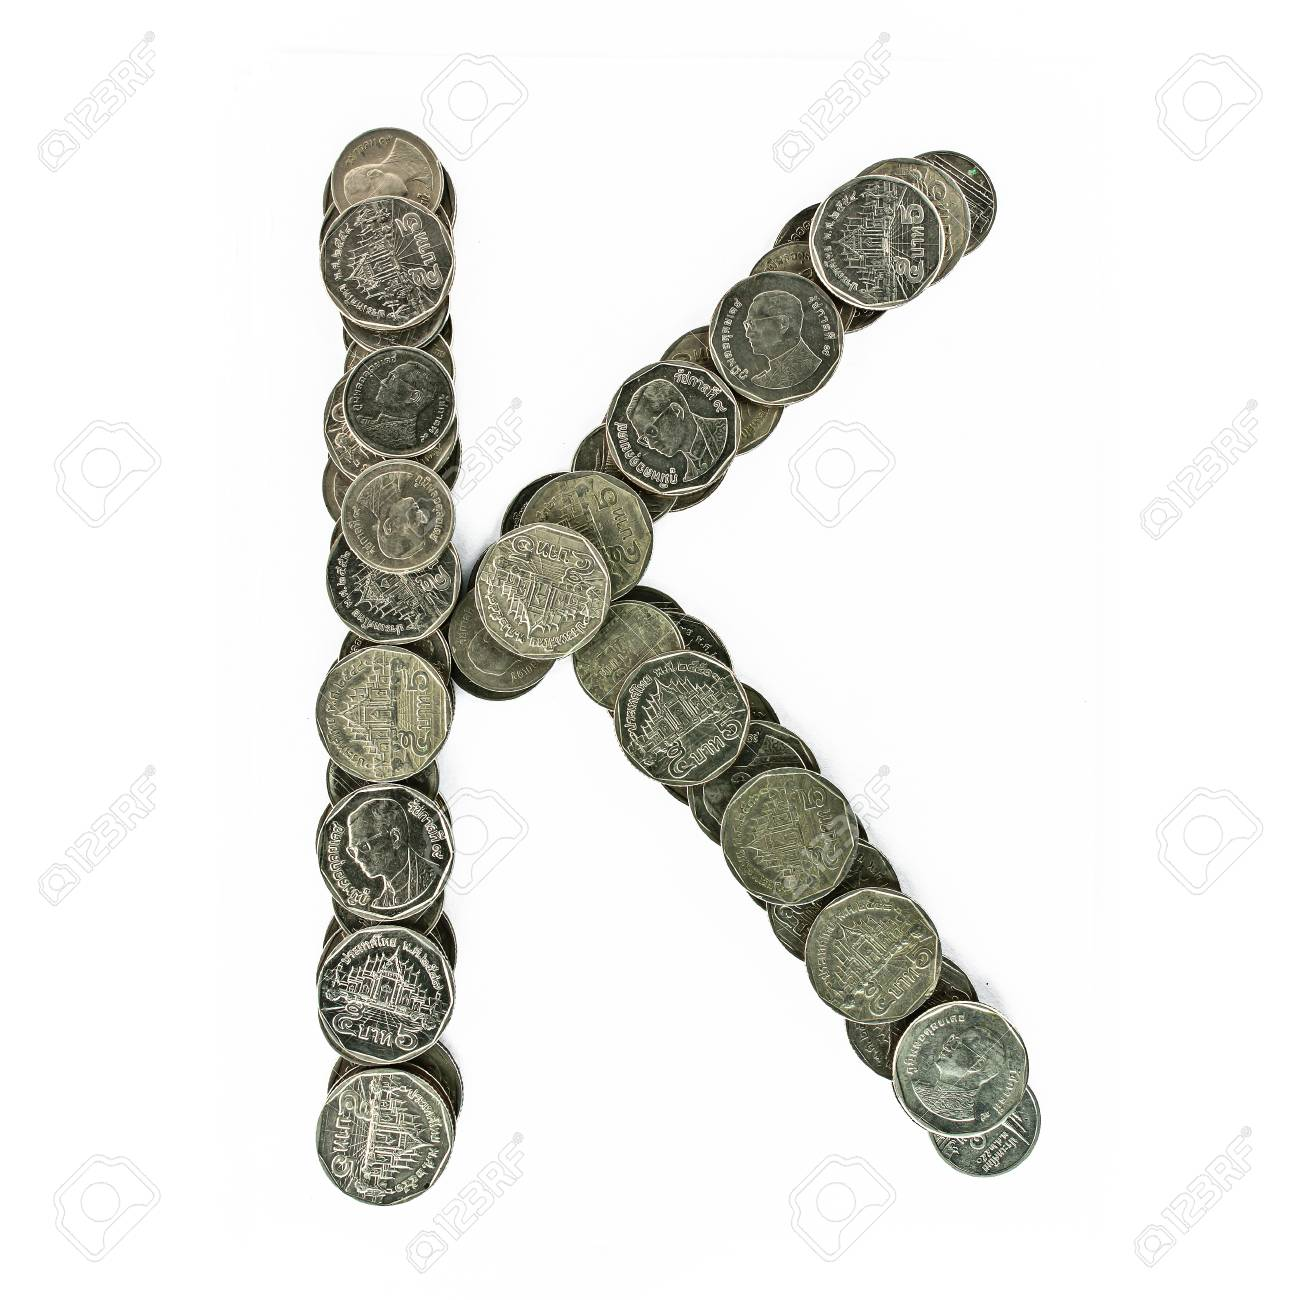 Astonishing Myport Ideas Of Alphabet From The Thai Coins. Isolated On